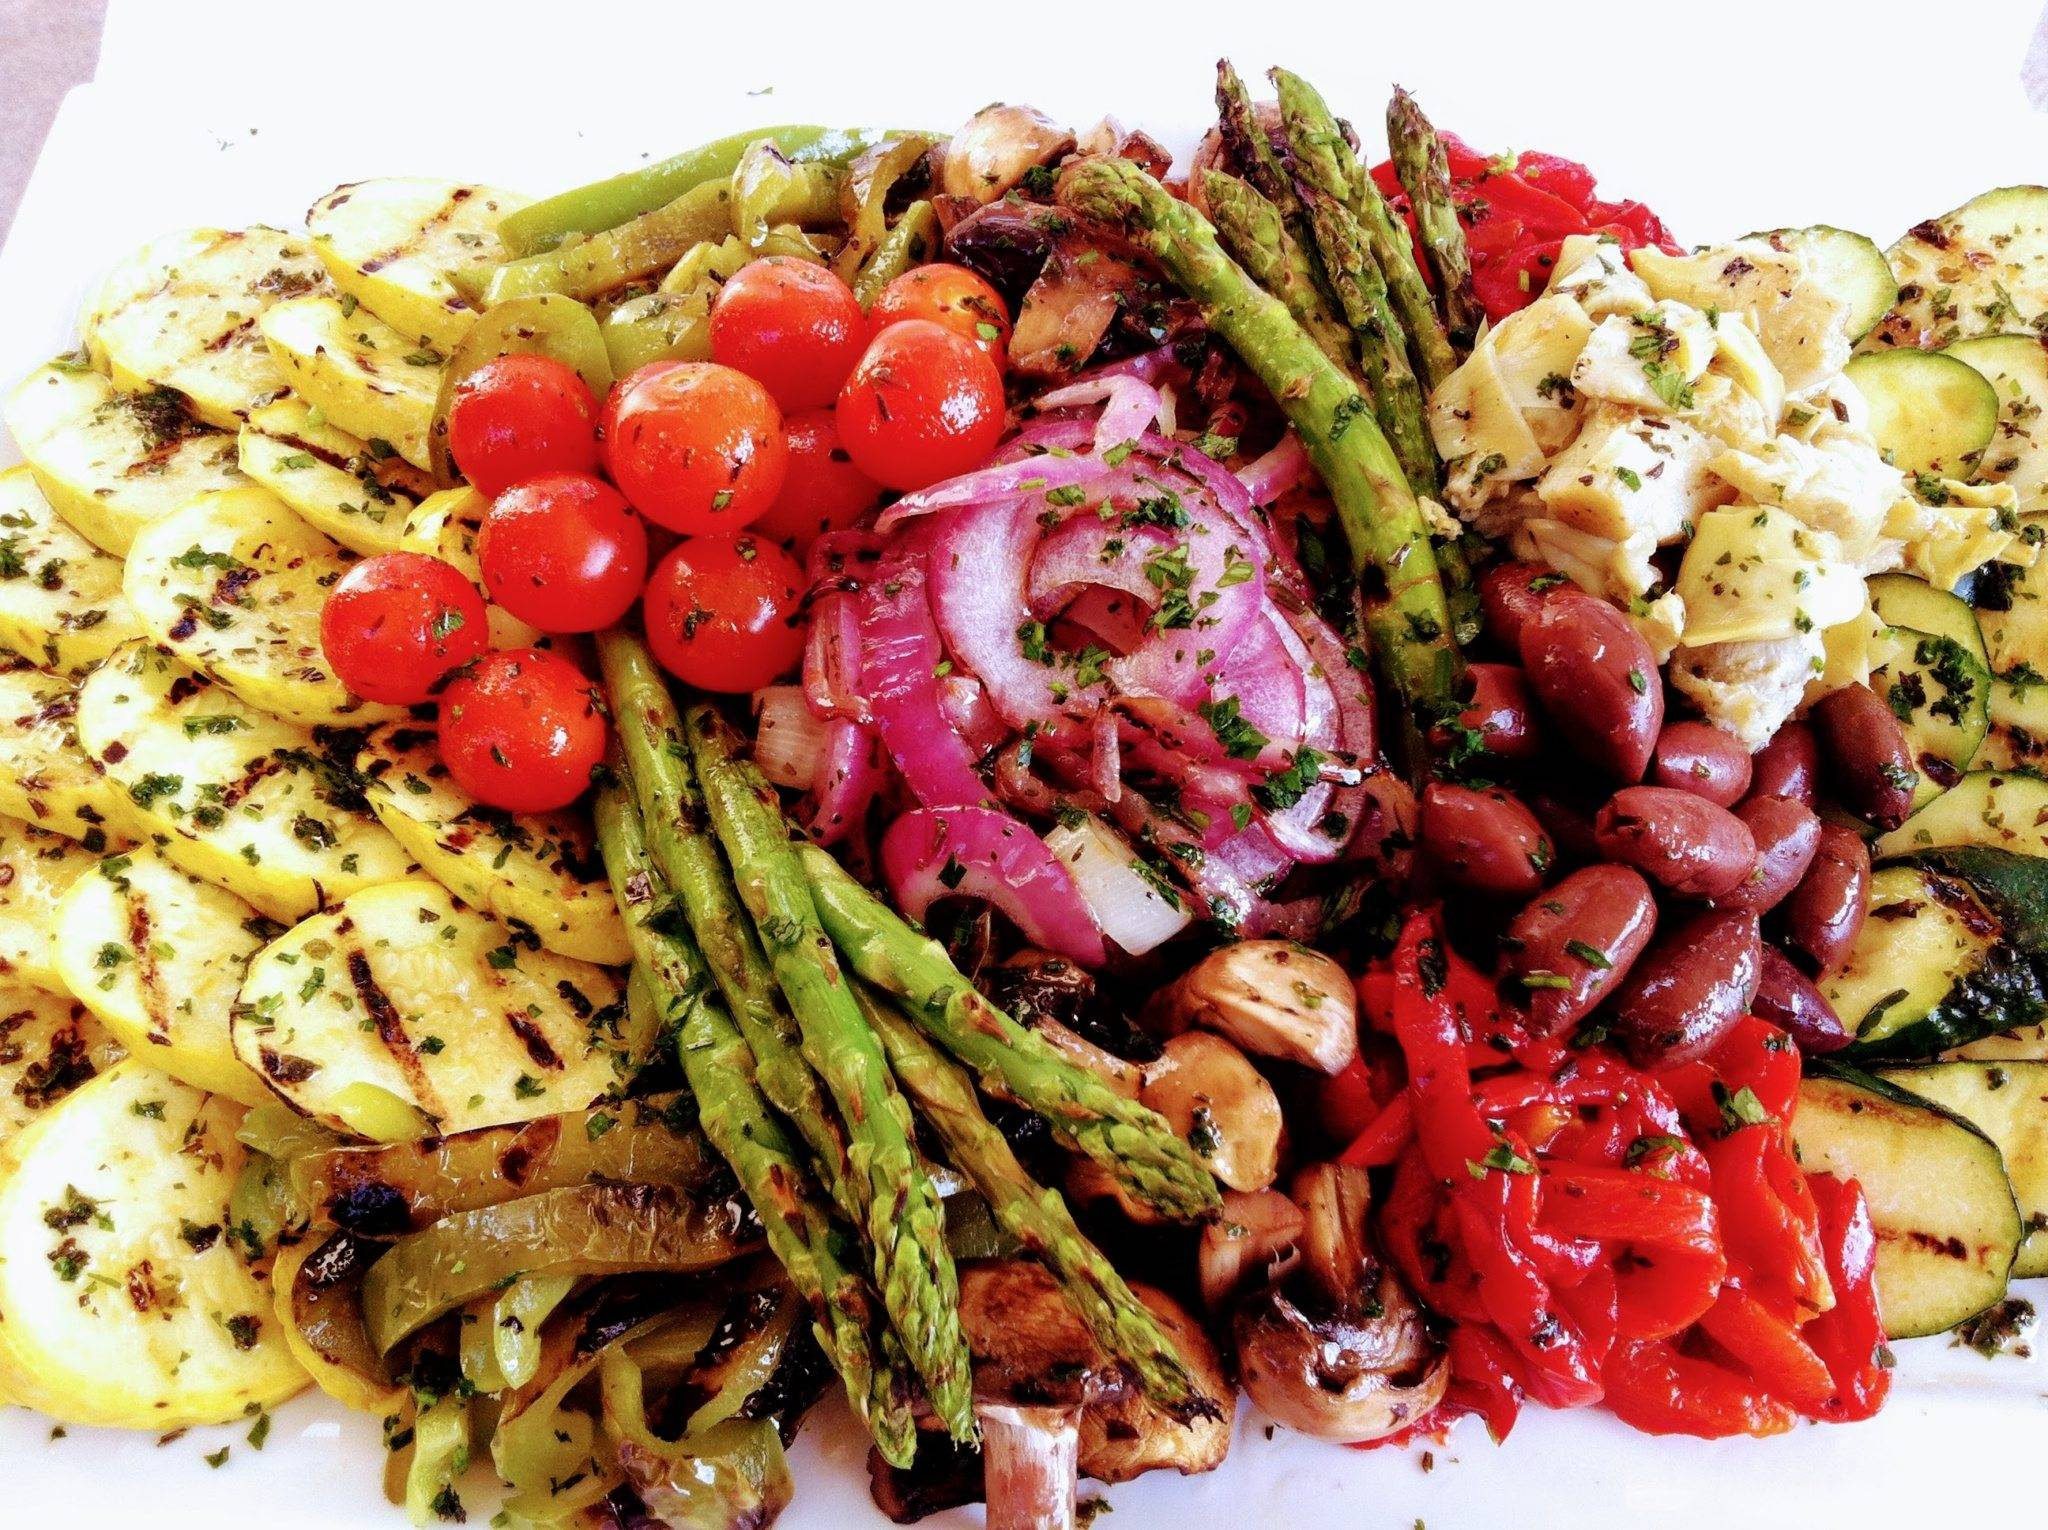 Assorted Grilled Vegetable Platter